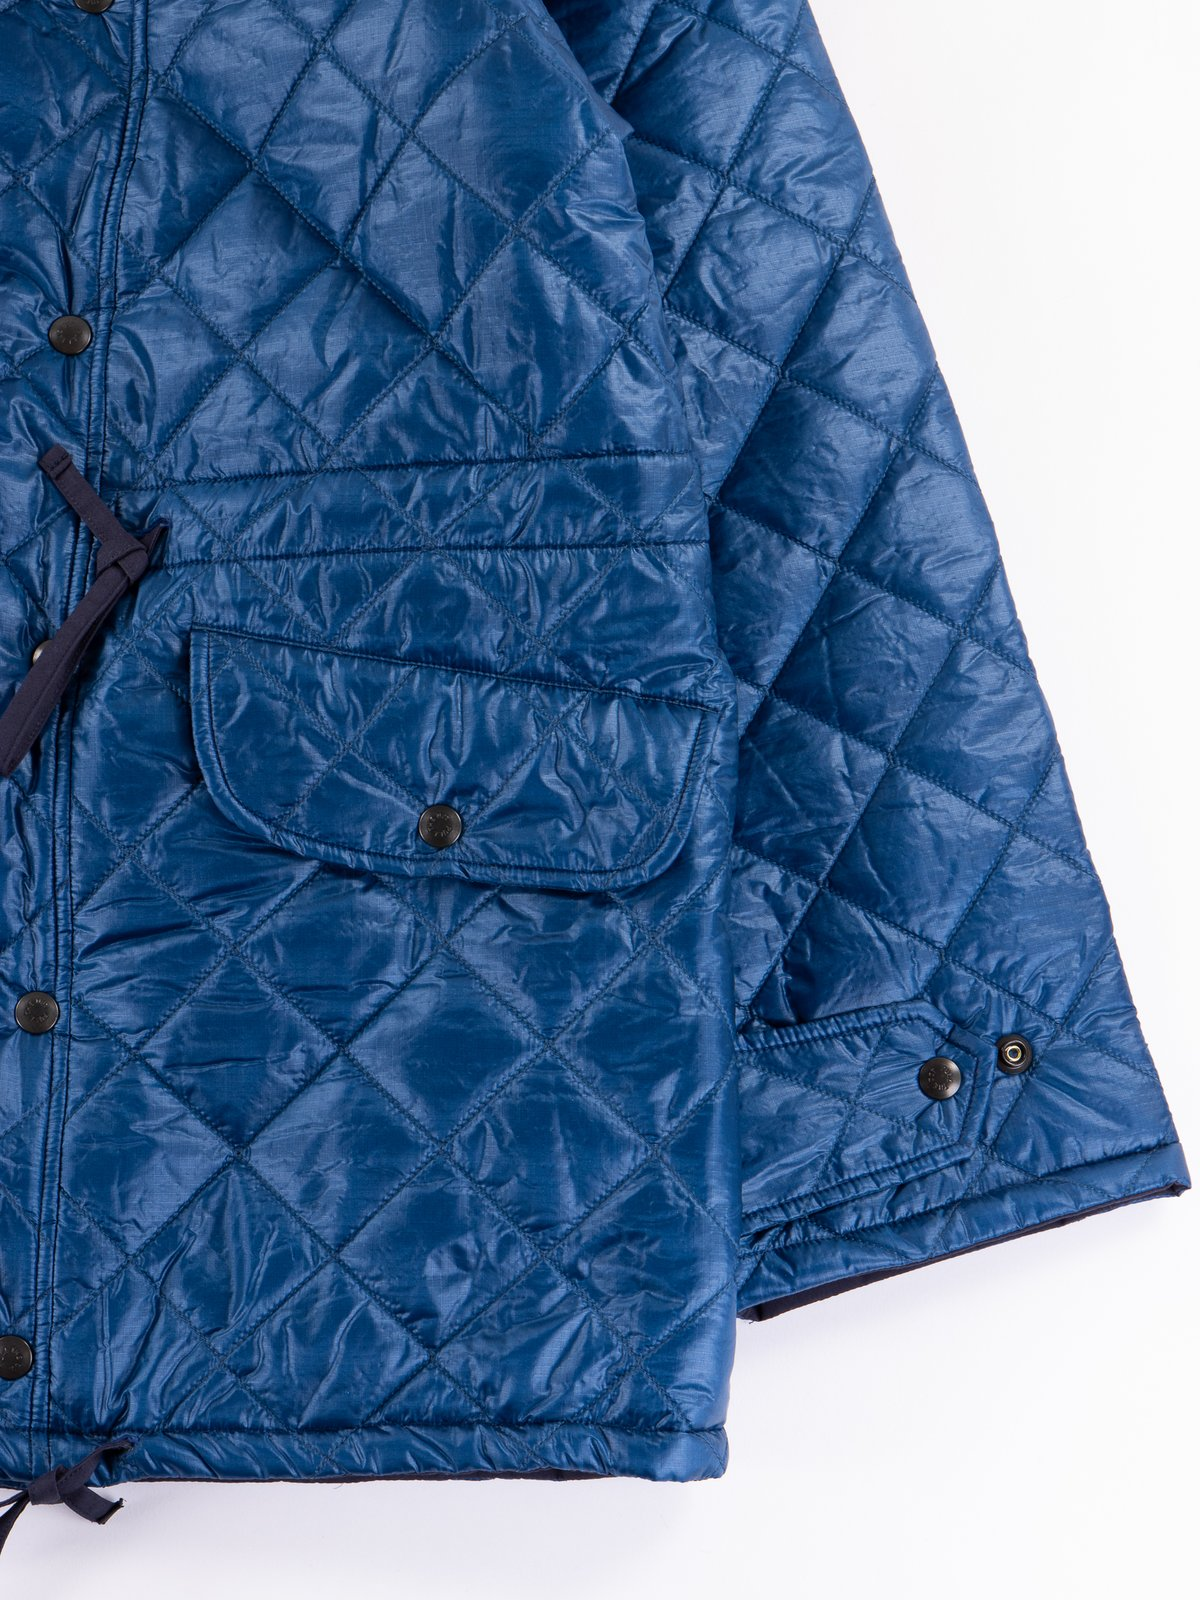 Navy 3oz Zigzag Dotera Fill Hooded Quilted Jacket - Image 4